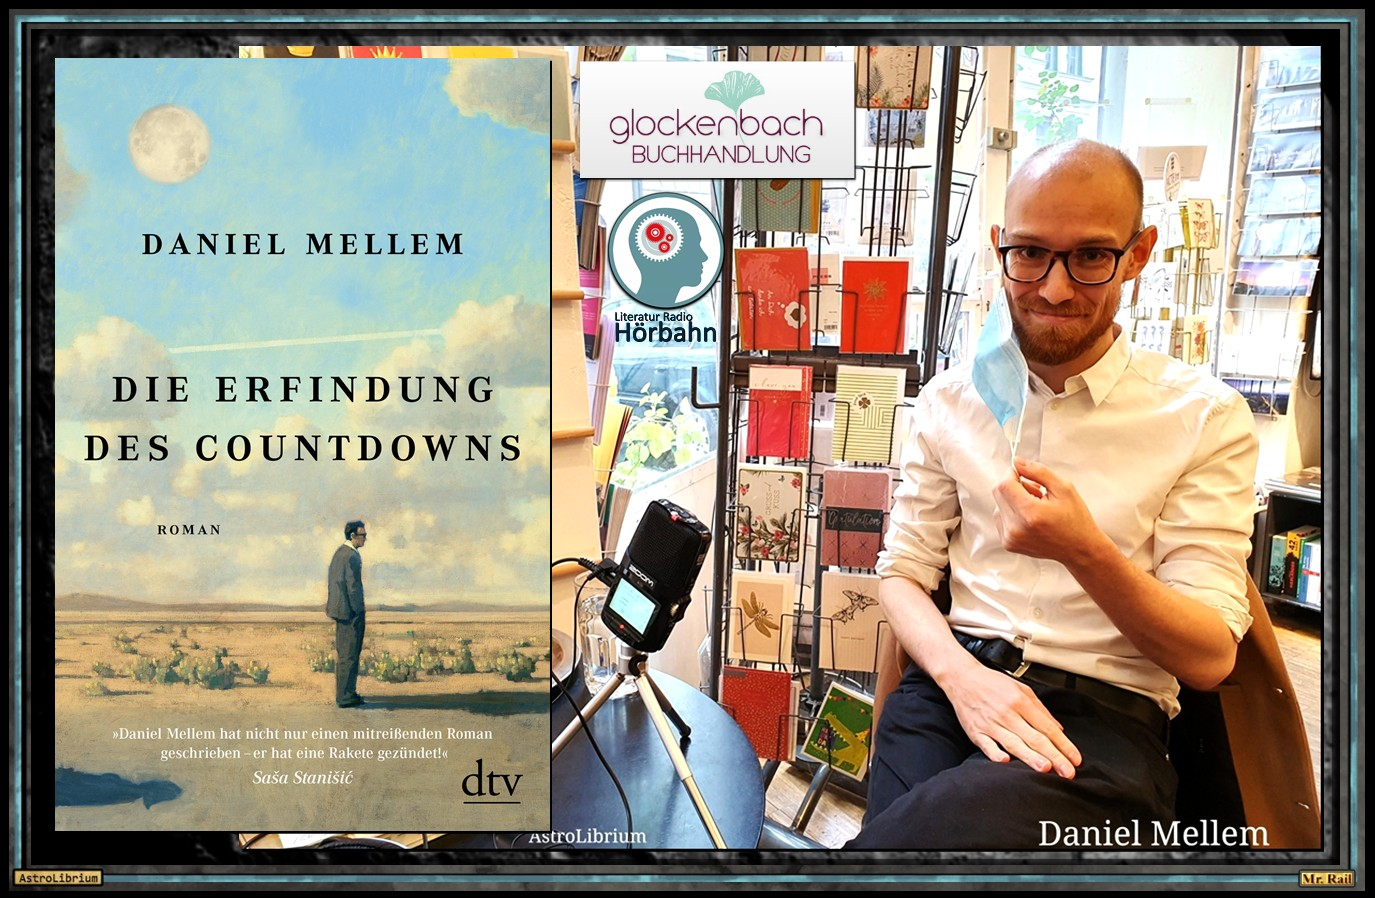 Die Erfindung des Countdowns - Daniel Mellem - Das Interview - Astrolibrium